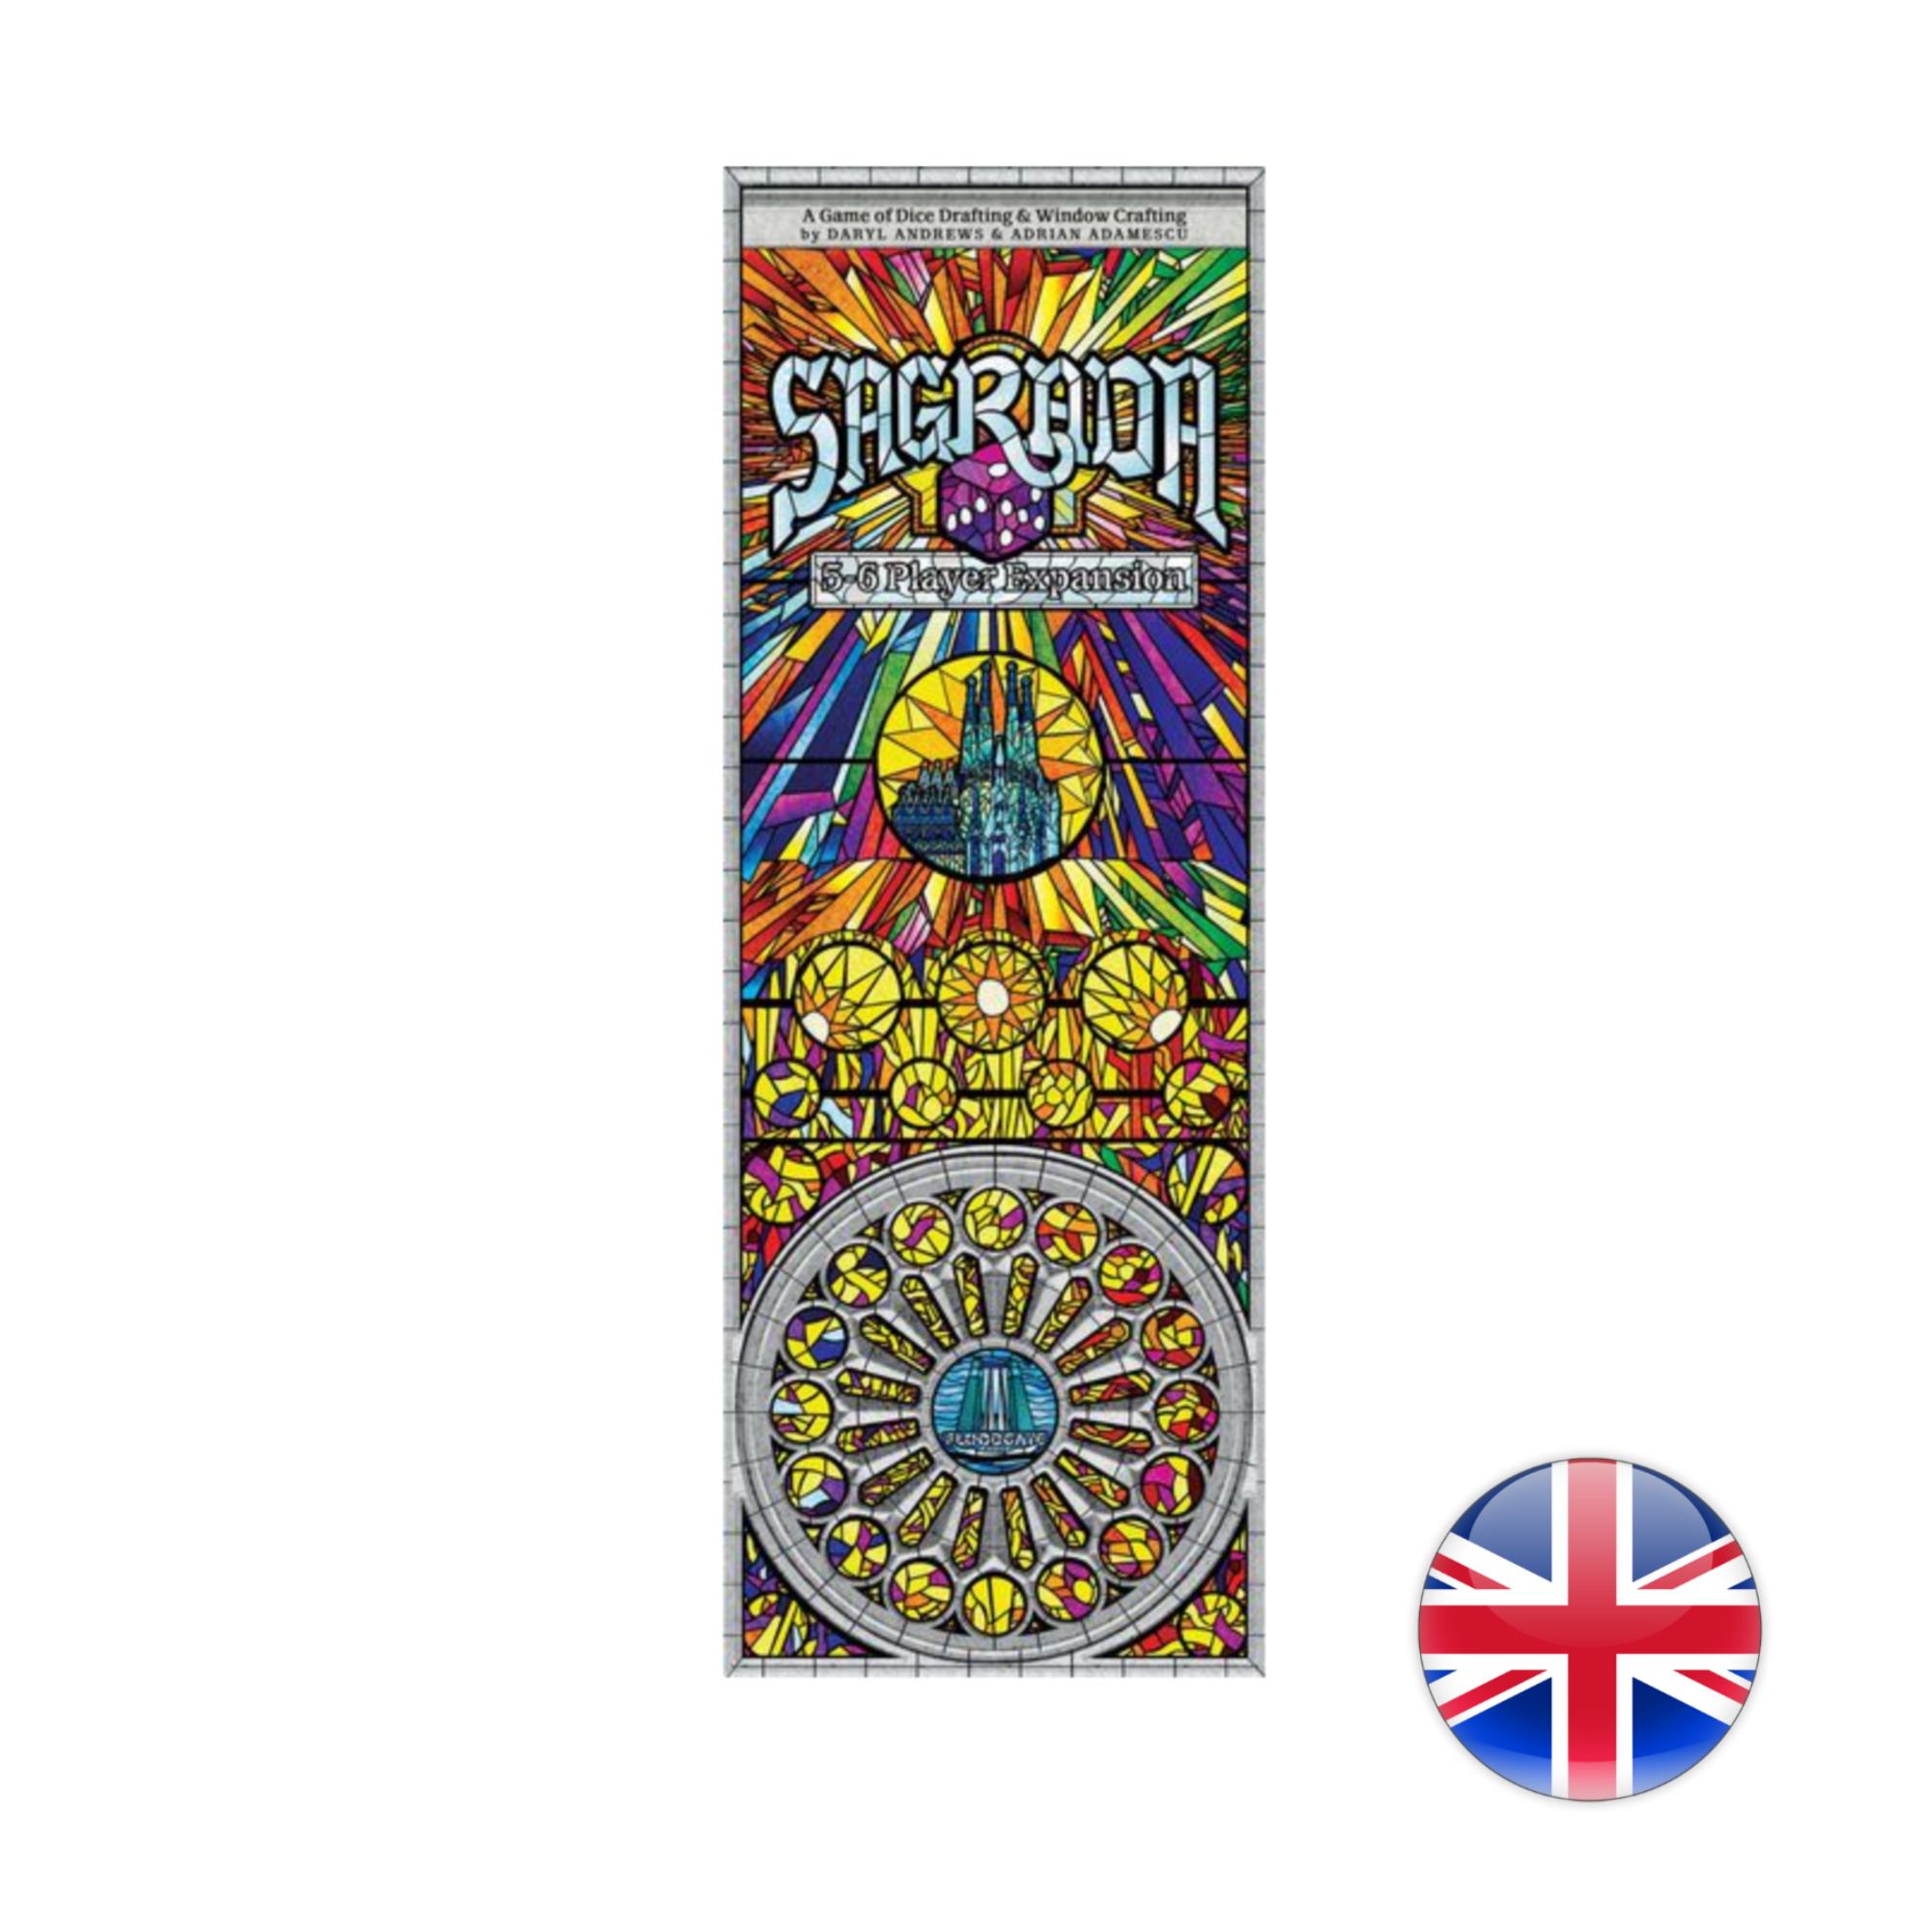 Floodgate Games Sagrada: 5 & 6 Players Expansion